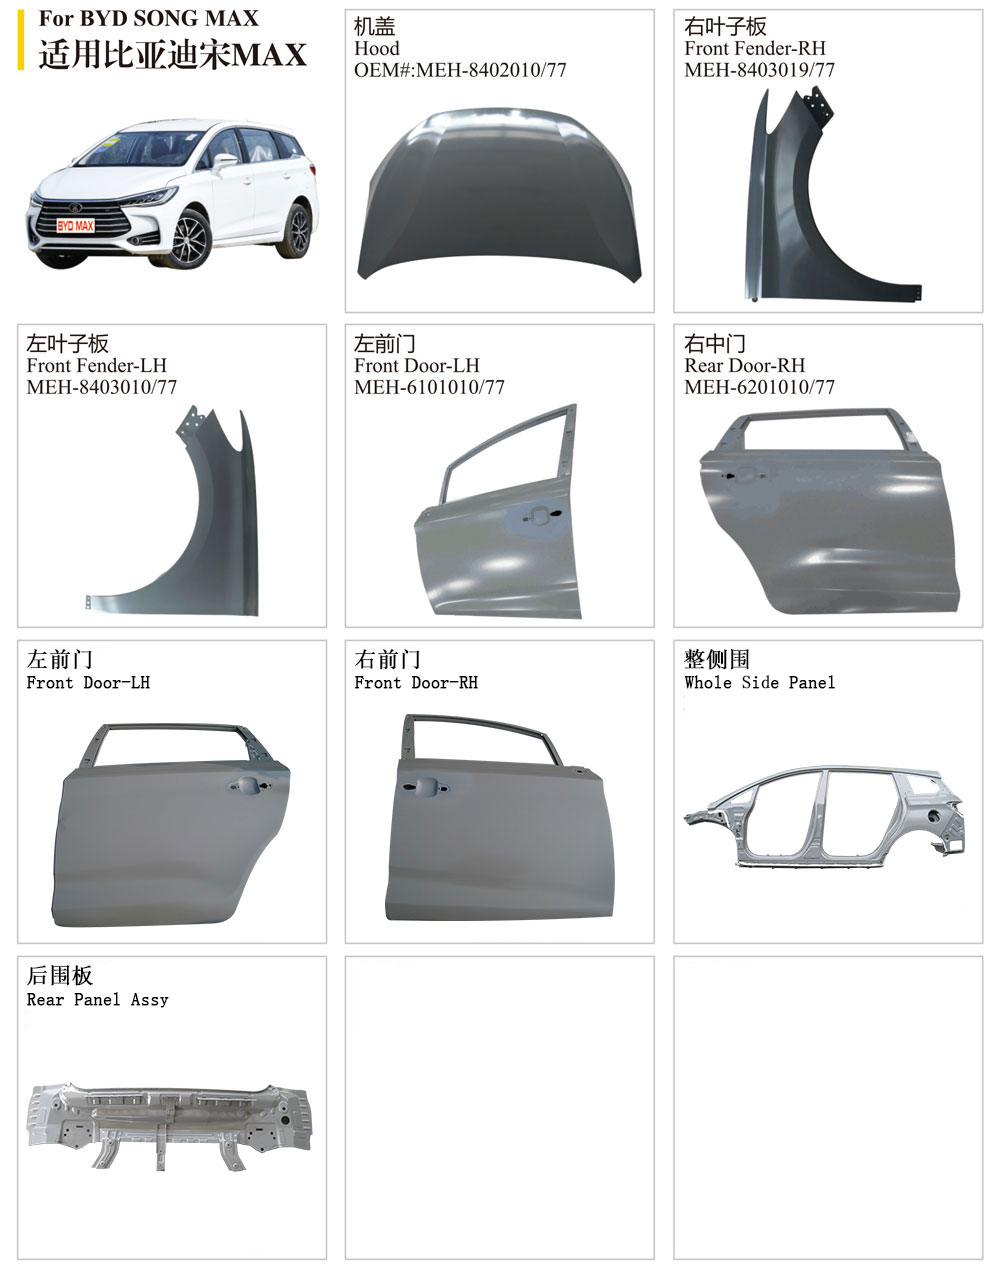 Byd Song Max Rear Door